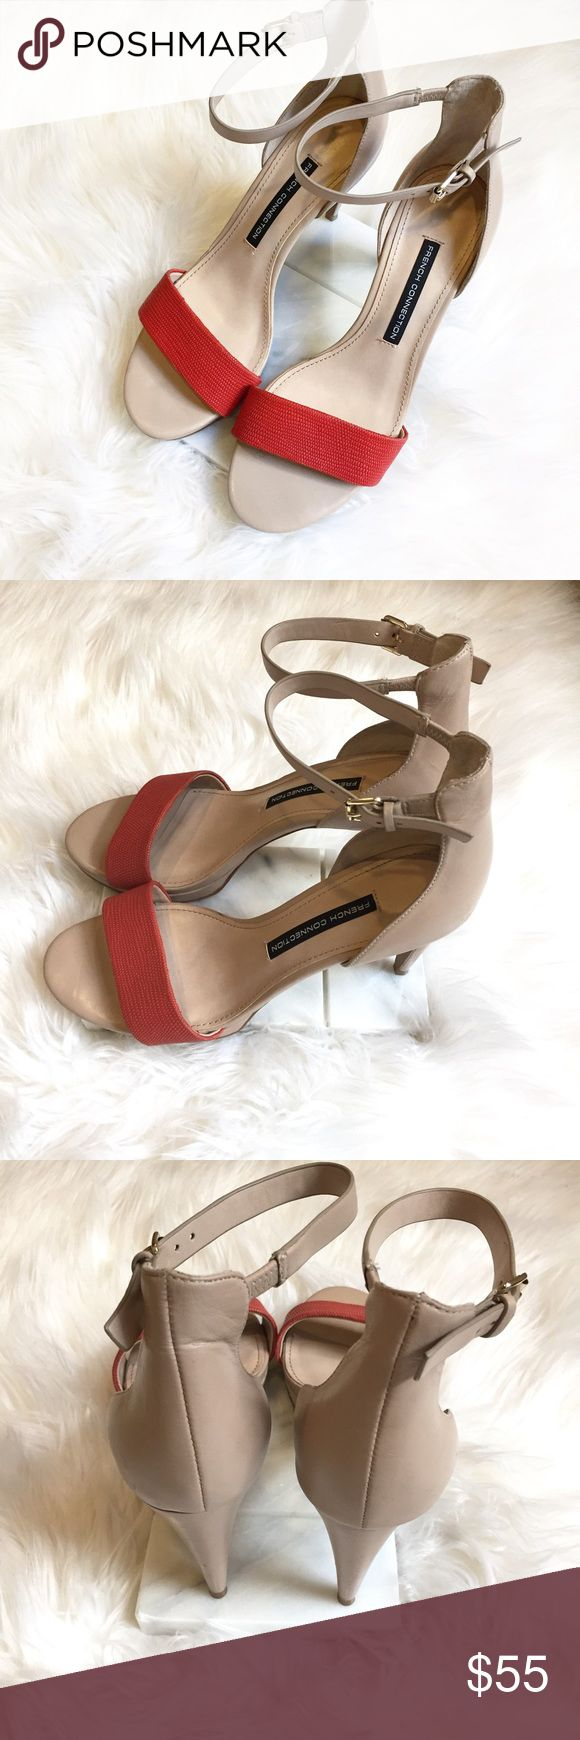 """French Connection 'Nata' Ankle Strap Heels French Connection 'Nata' Ankle Strap Heels! Women's size 7.5. Nude with coral accent color. In excellent condition with only minor signs of wear! Embossed leather upper. Open toe.   Size: 7.5 Heel height: 3.75"""" Platform height: 0.5"""" *Feels like 3.25"""" heel*  🔸10% off bundles of 2 or more items 🔸No Trades 🔸Reasonable offers accepted 🔸Fast Shipping  Please comment with any questions! French Connection Shoes Heels"""